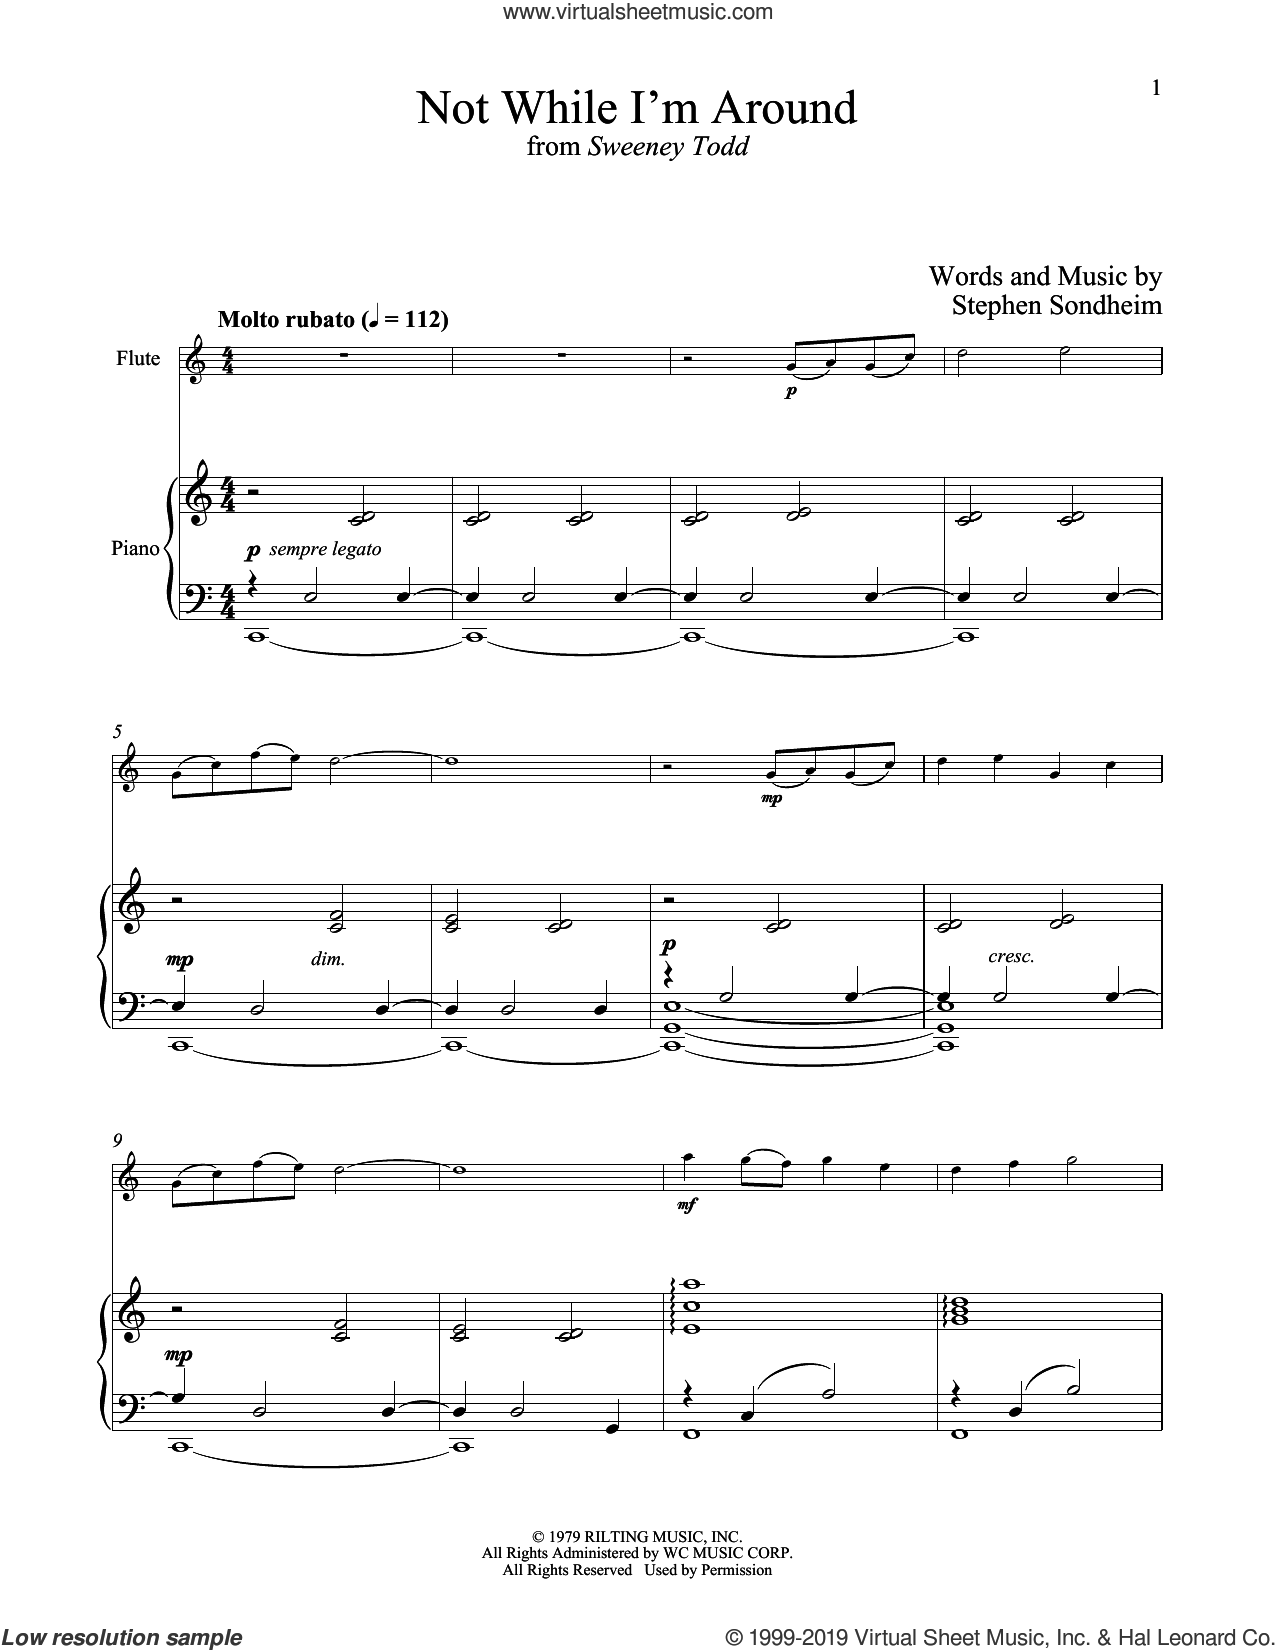 Not While I'm Around (from Sweeney Todd) sheet music for flute and piano by Stephen Sondheim, intermediate skill level